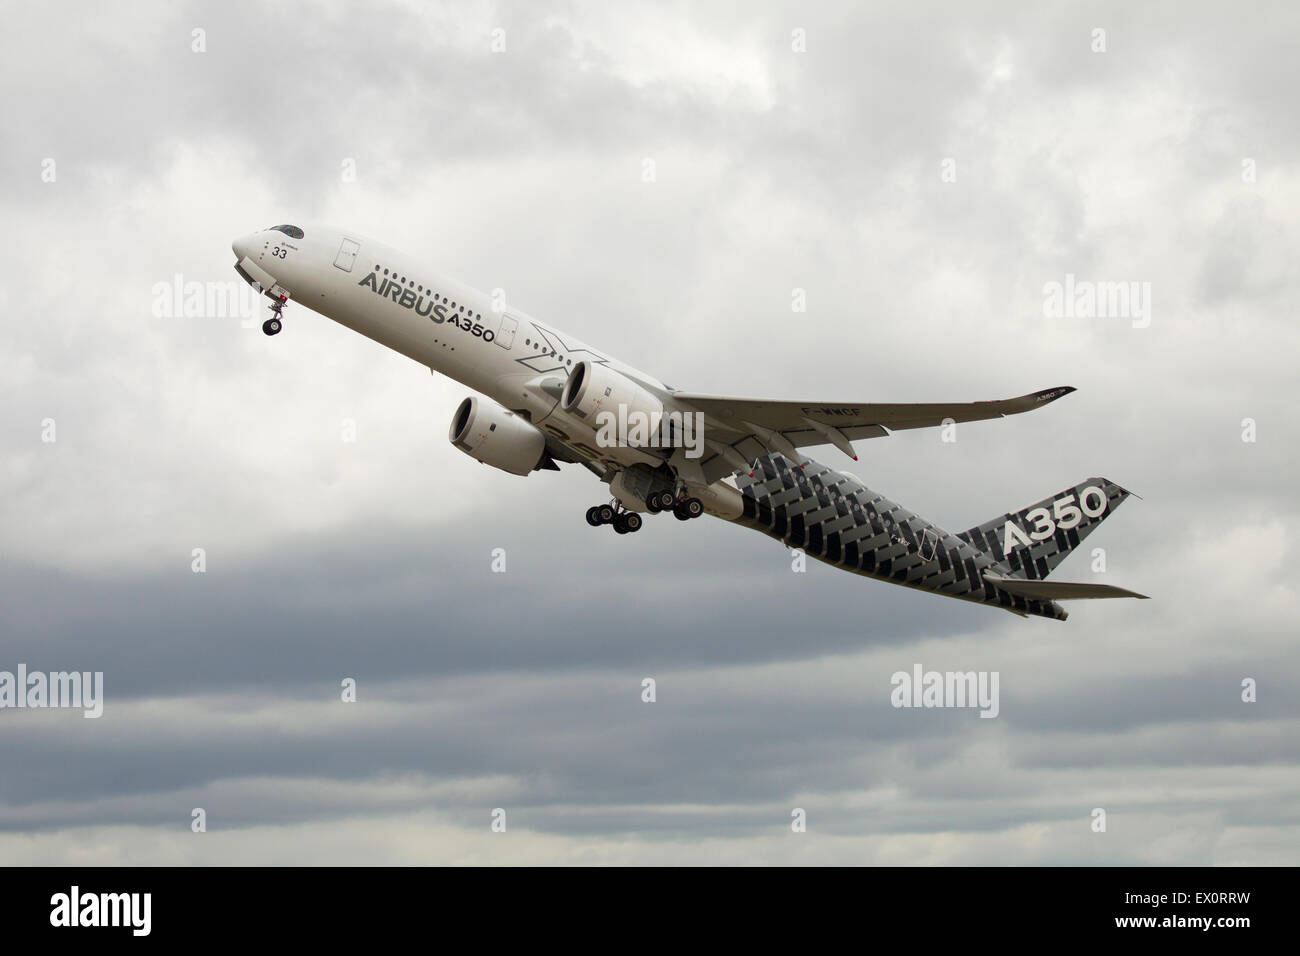 Airbus 350 taking off at the 2015 Le Bourget airshow - Stock Image